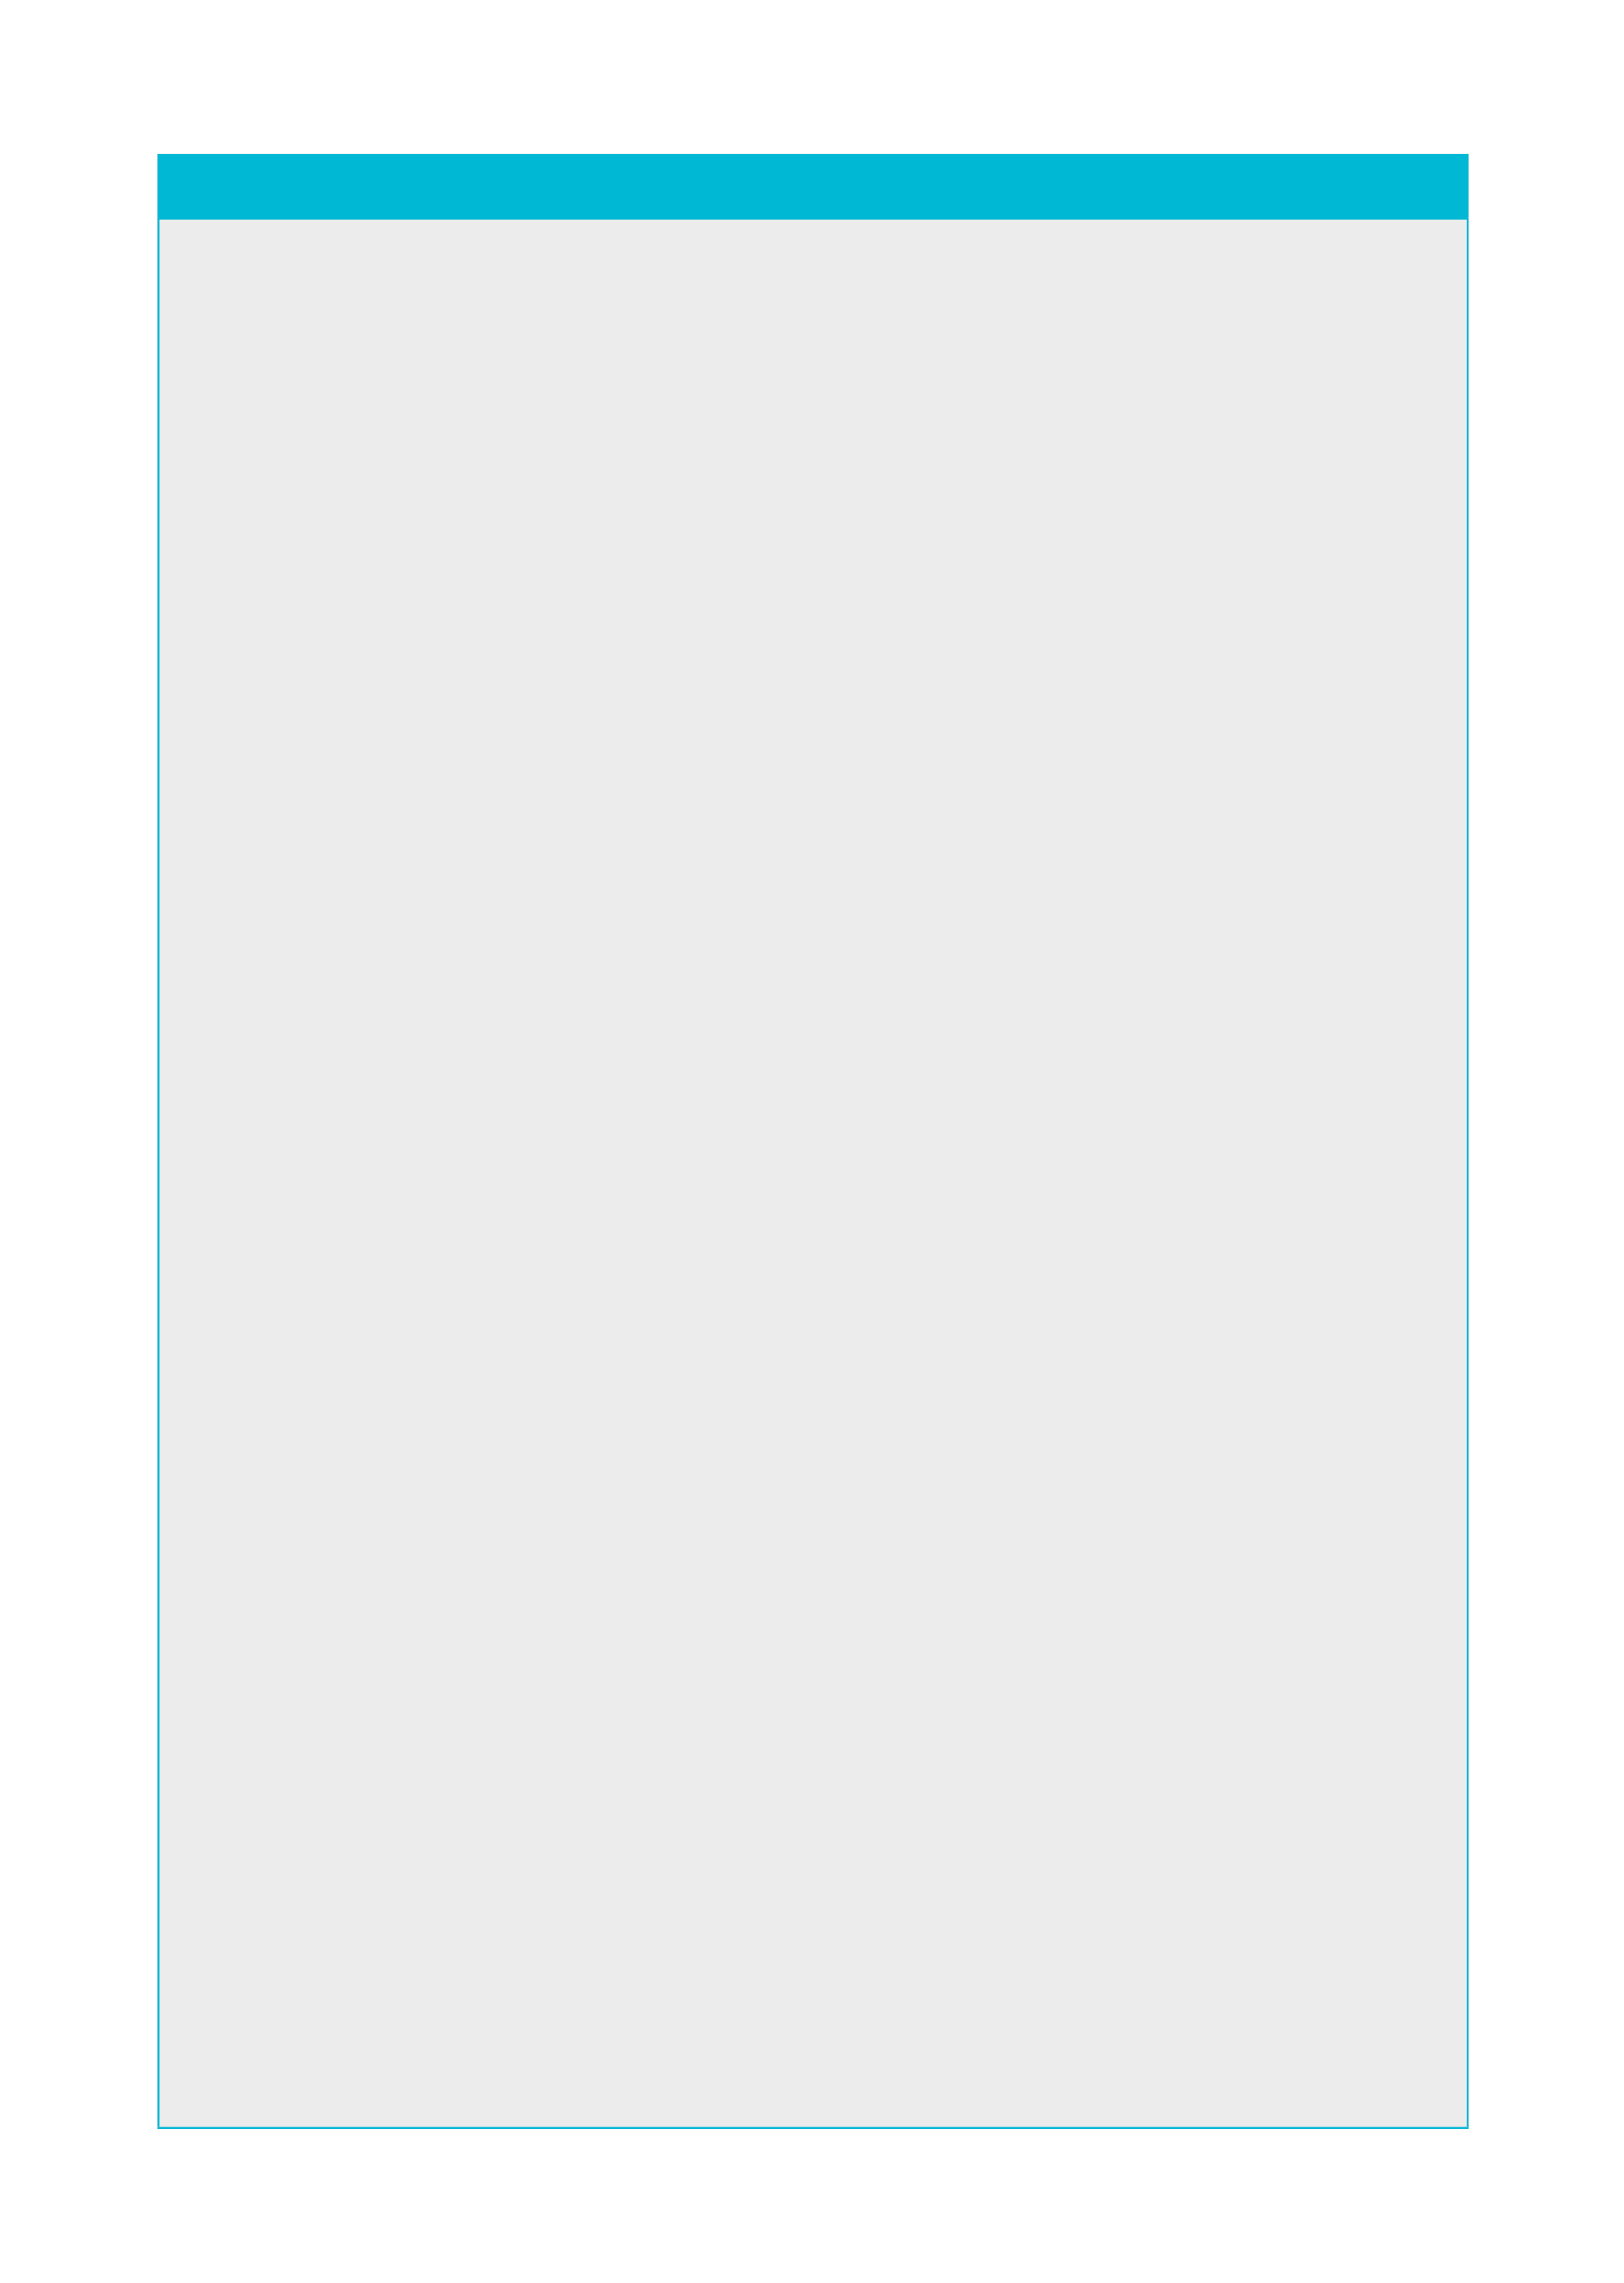 Blank Policy Page Grey